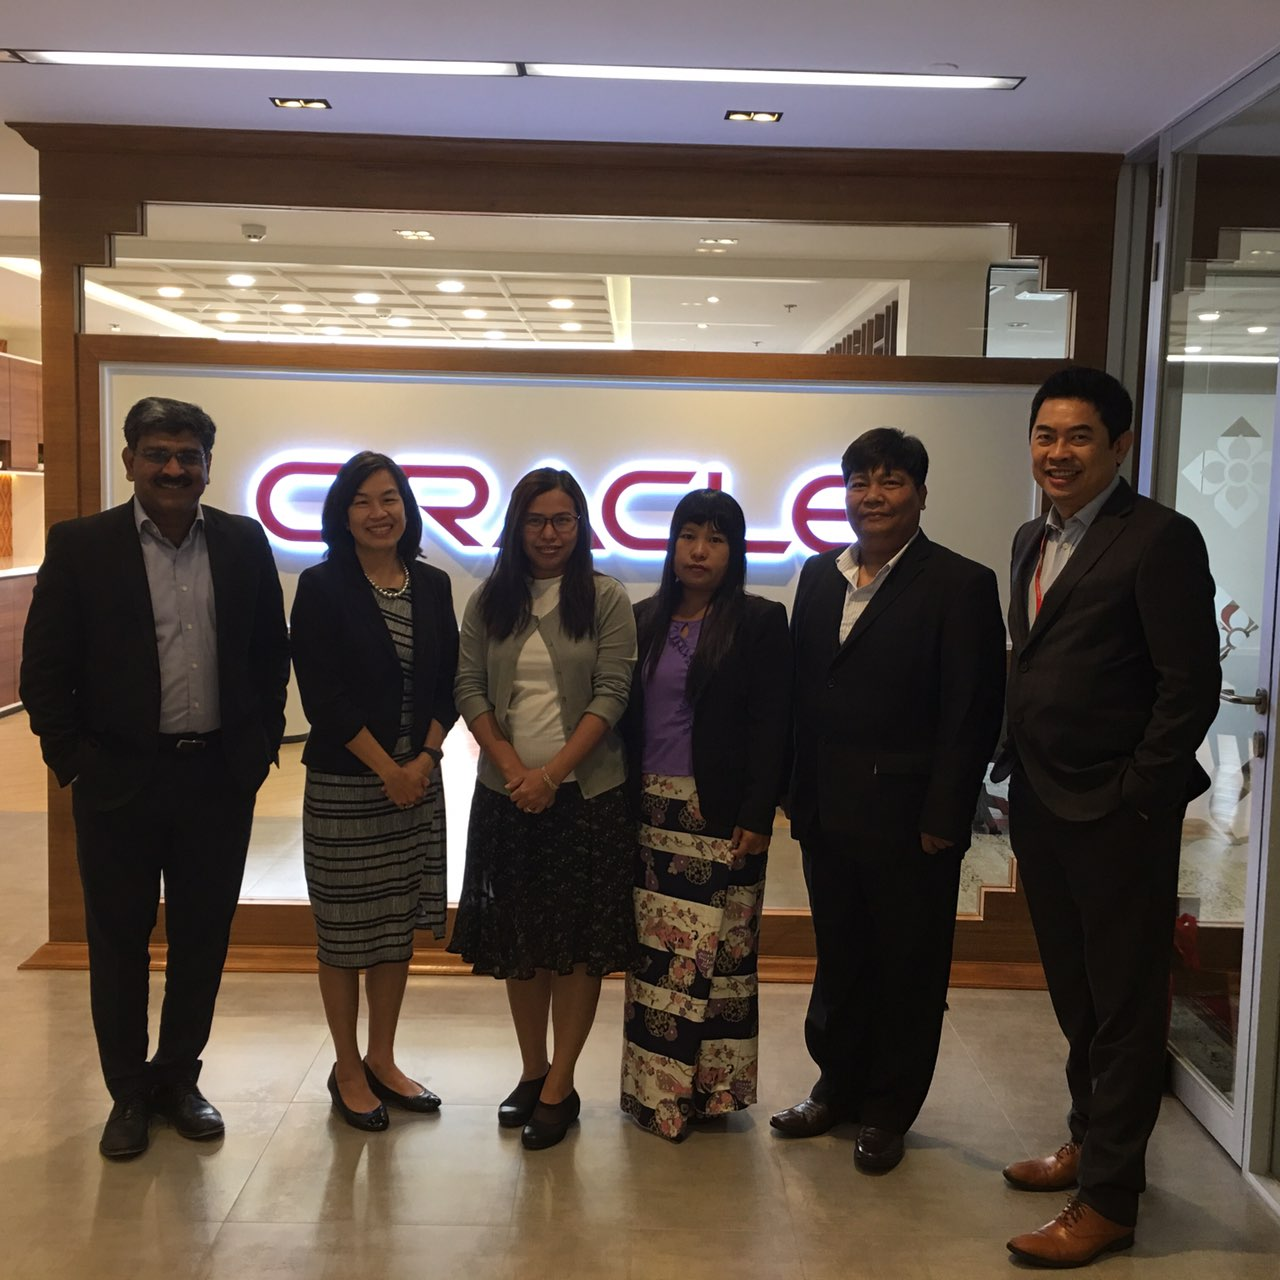 Meeting with the Oracle Communications team.